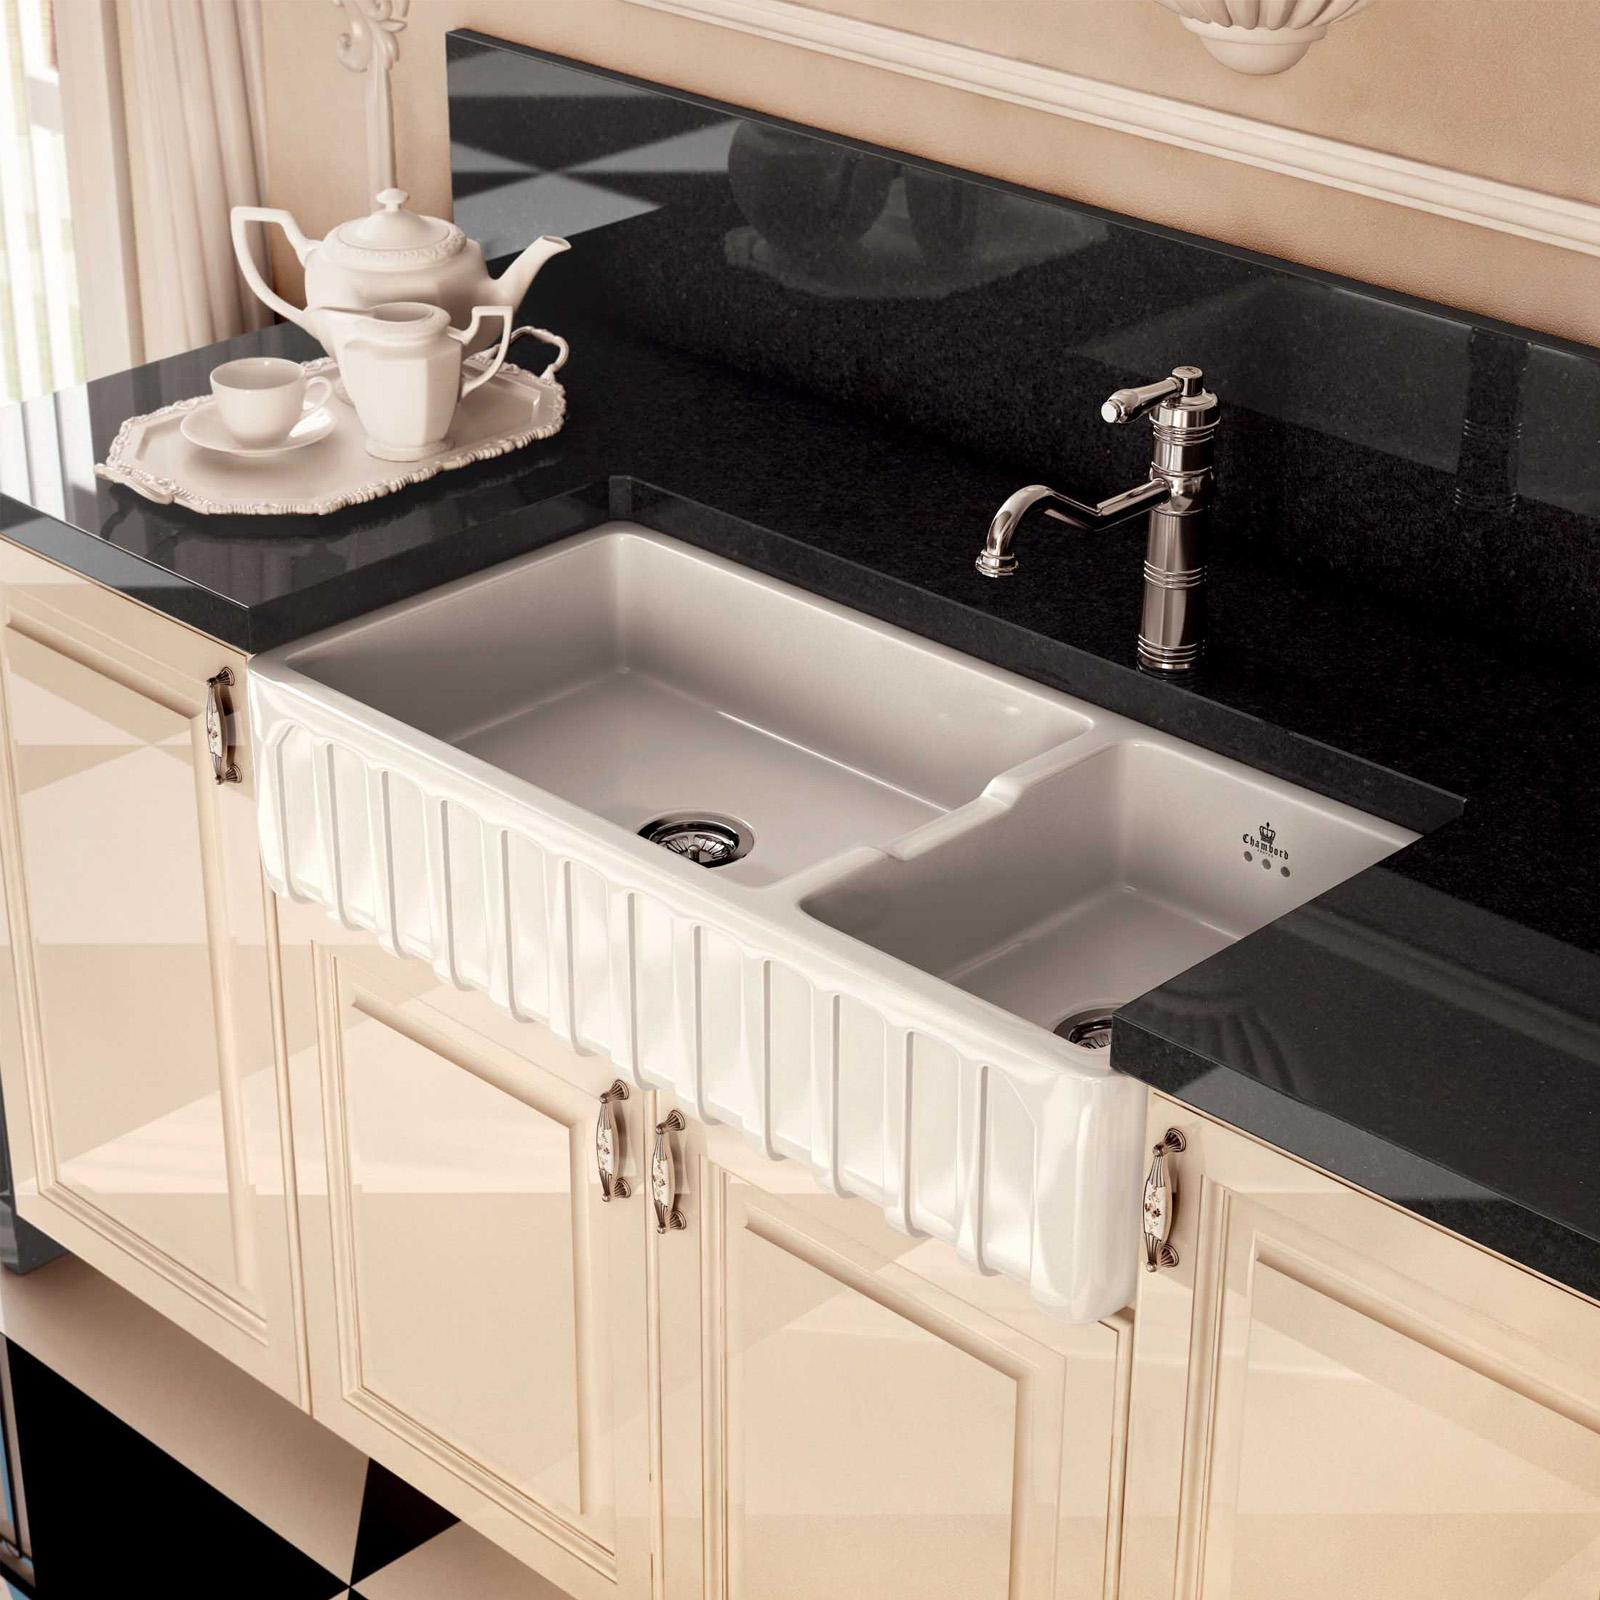 High-quality sink Louis III - one and a half bowl, ceramic - ambience 1